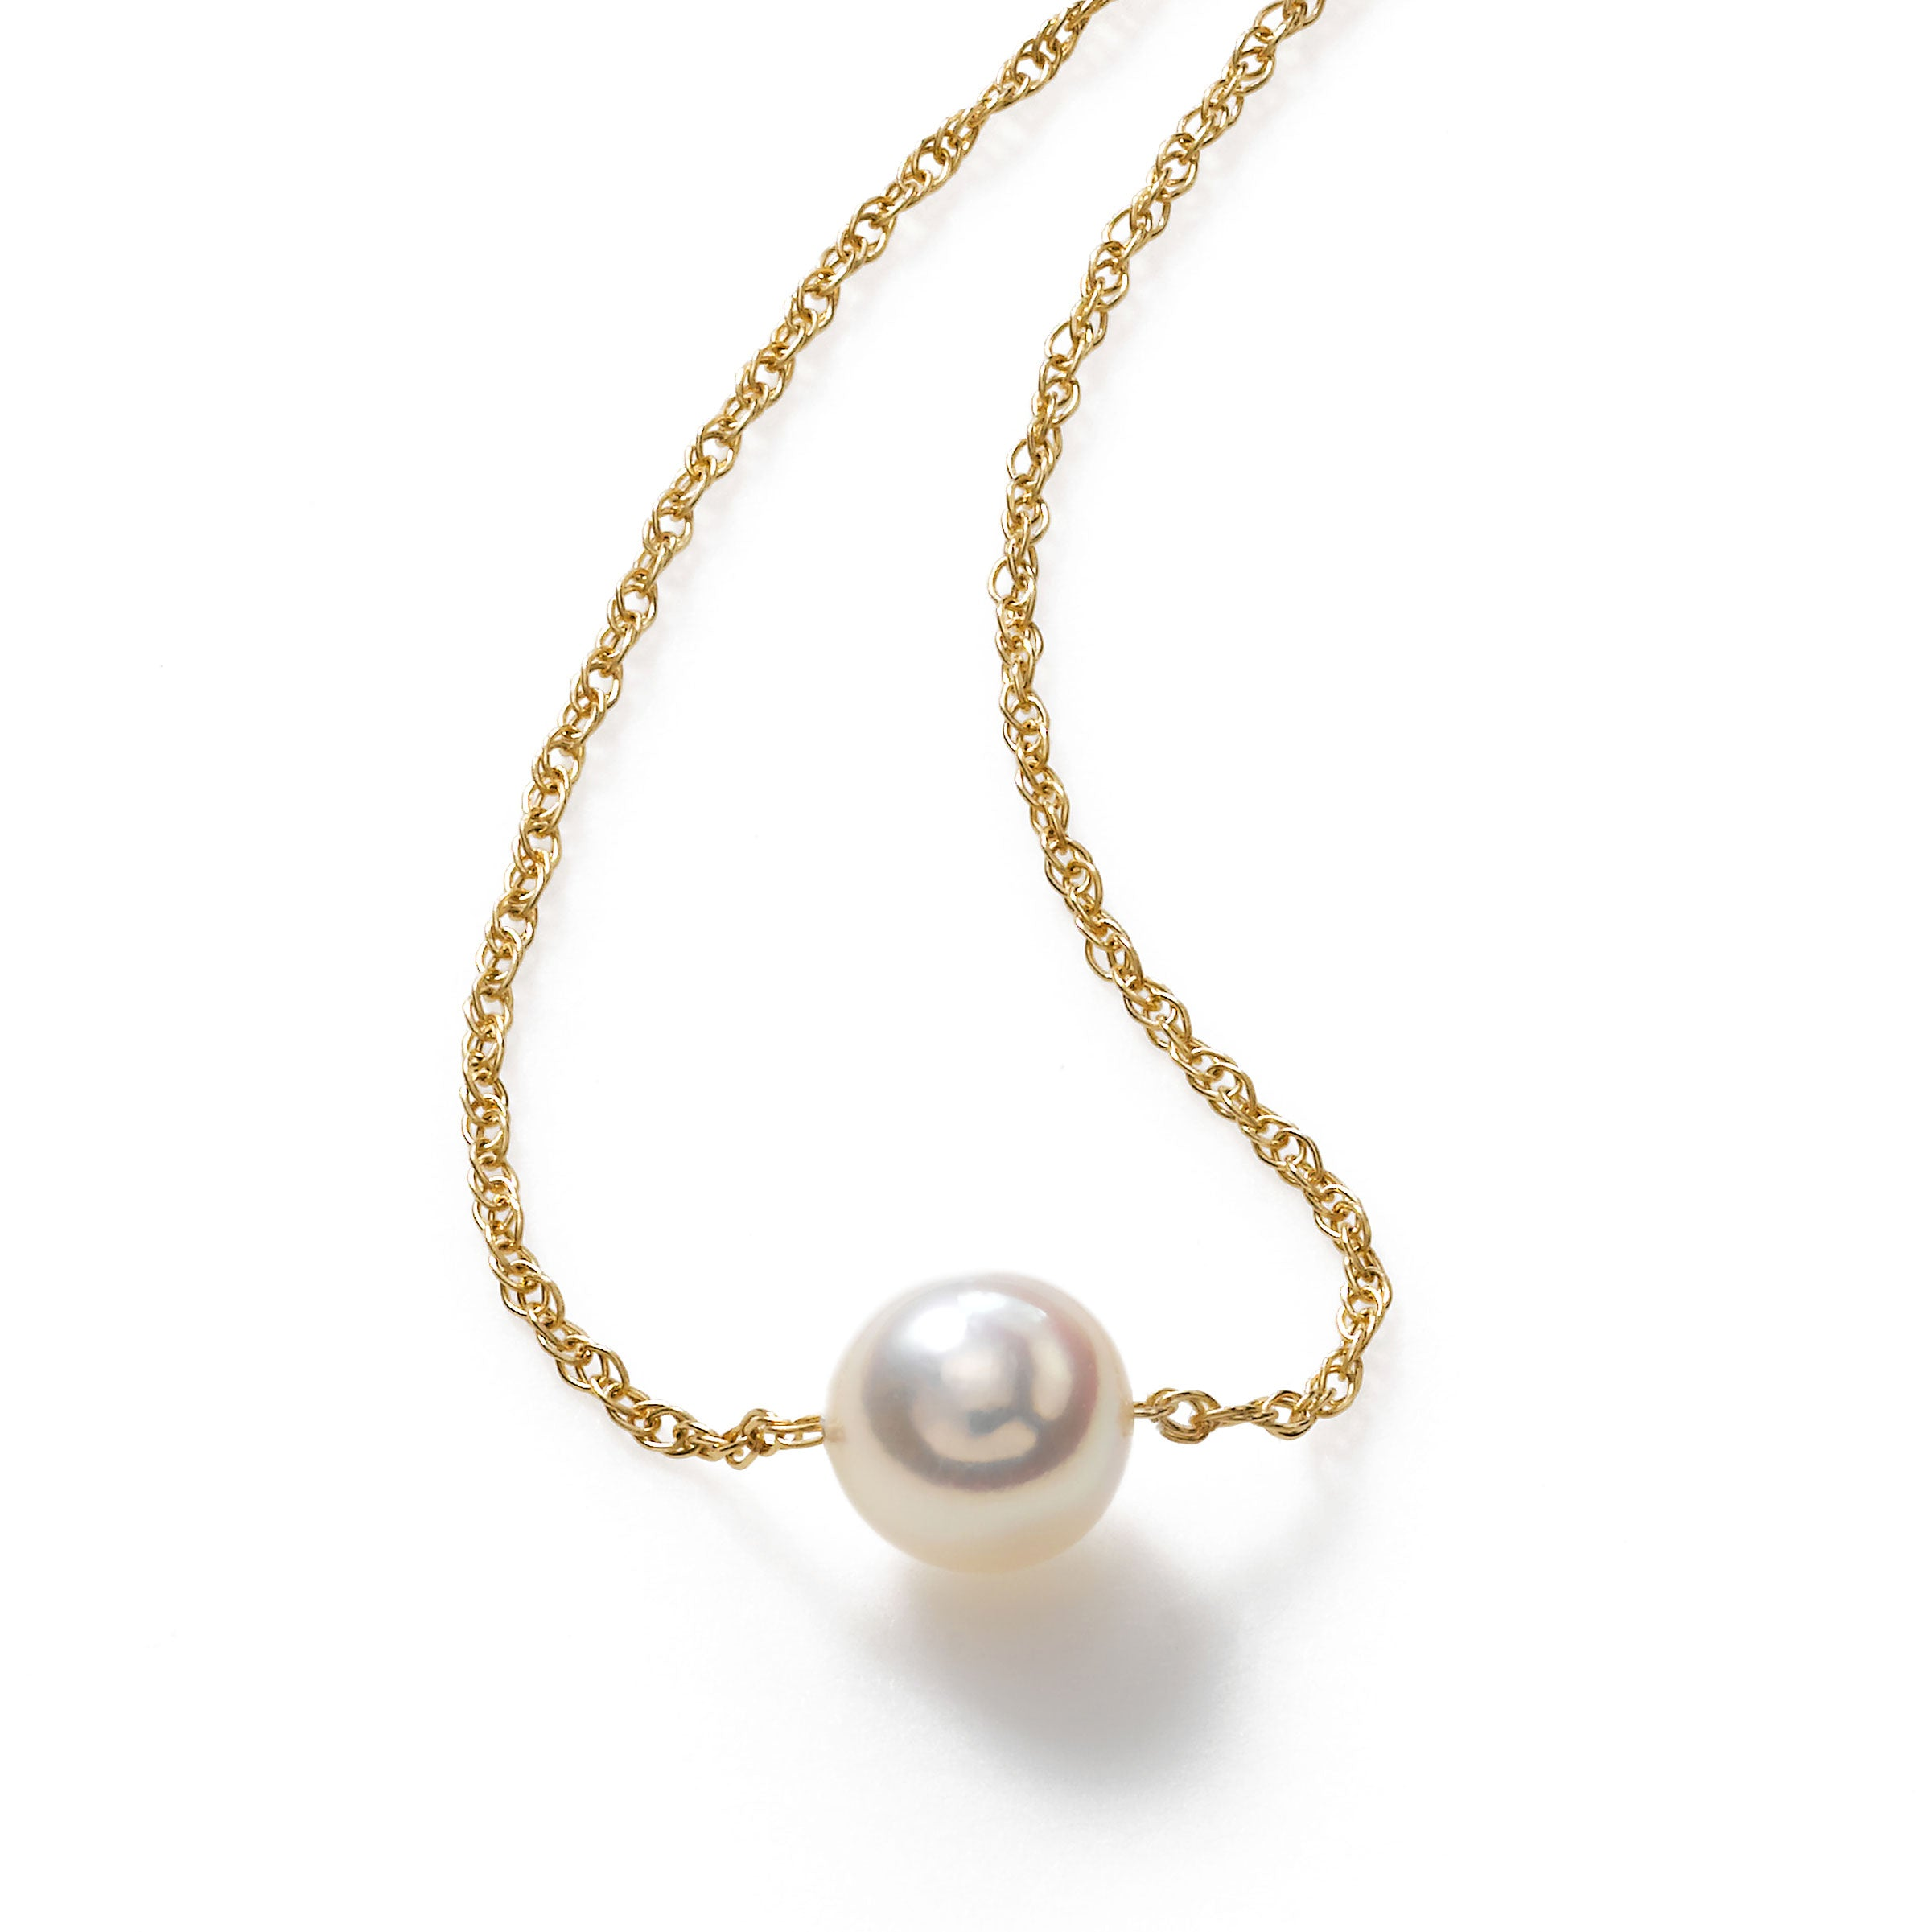 Pearl By Pearl Starter Necklace, Single Akoya 7.5MM Pearl, 14K Yellow Gold